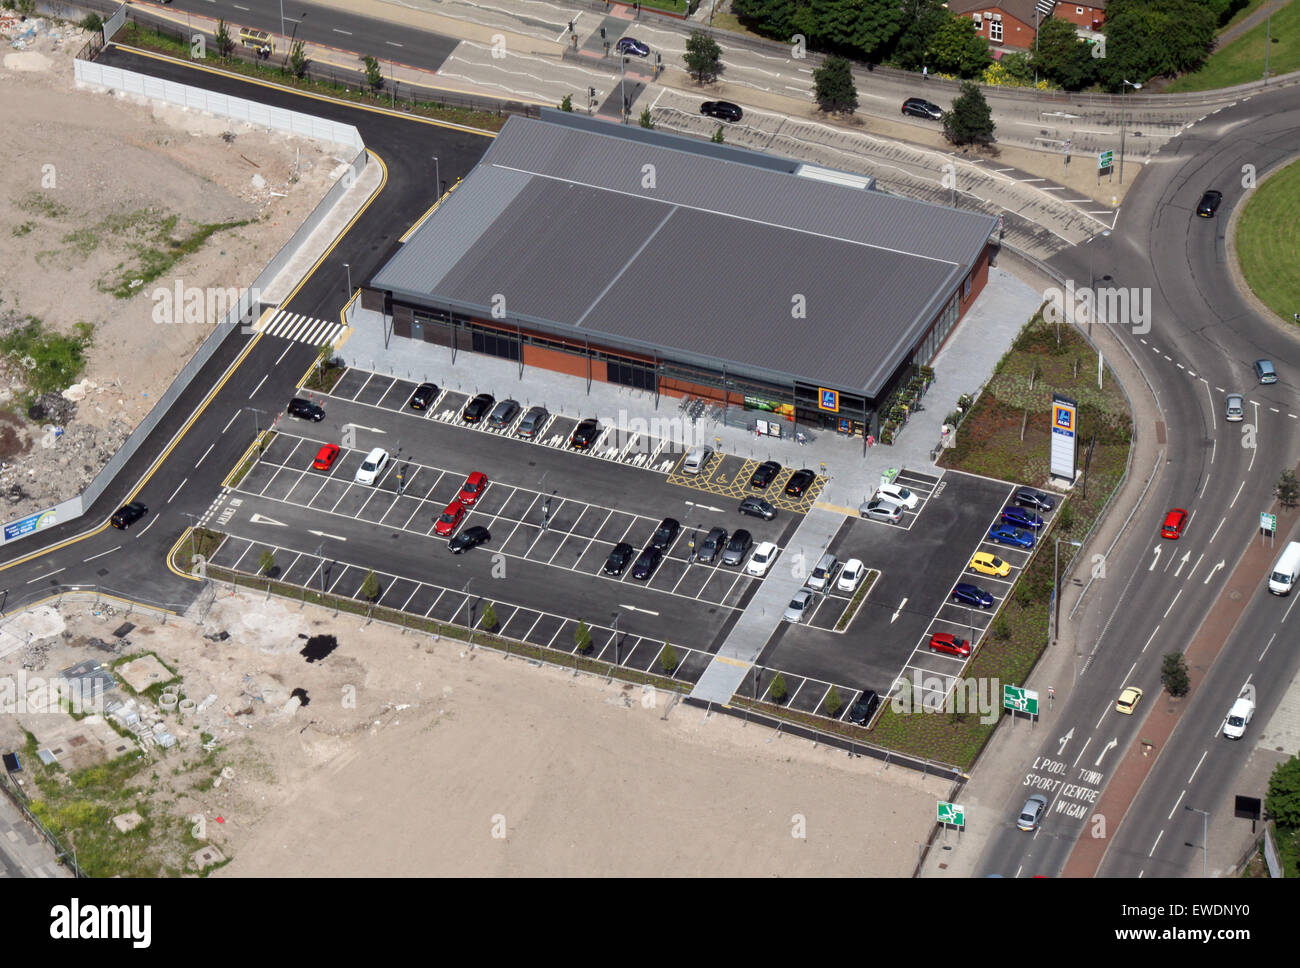 aerial view of an Aldi supermarket store, UK - Stock Image